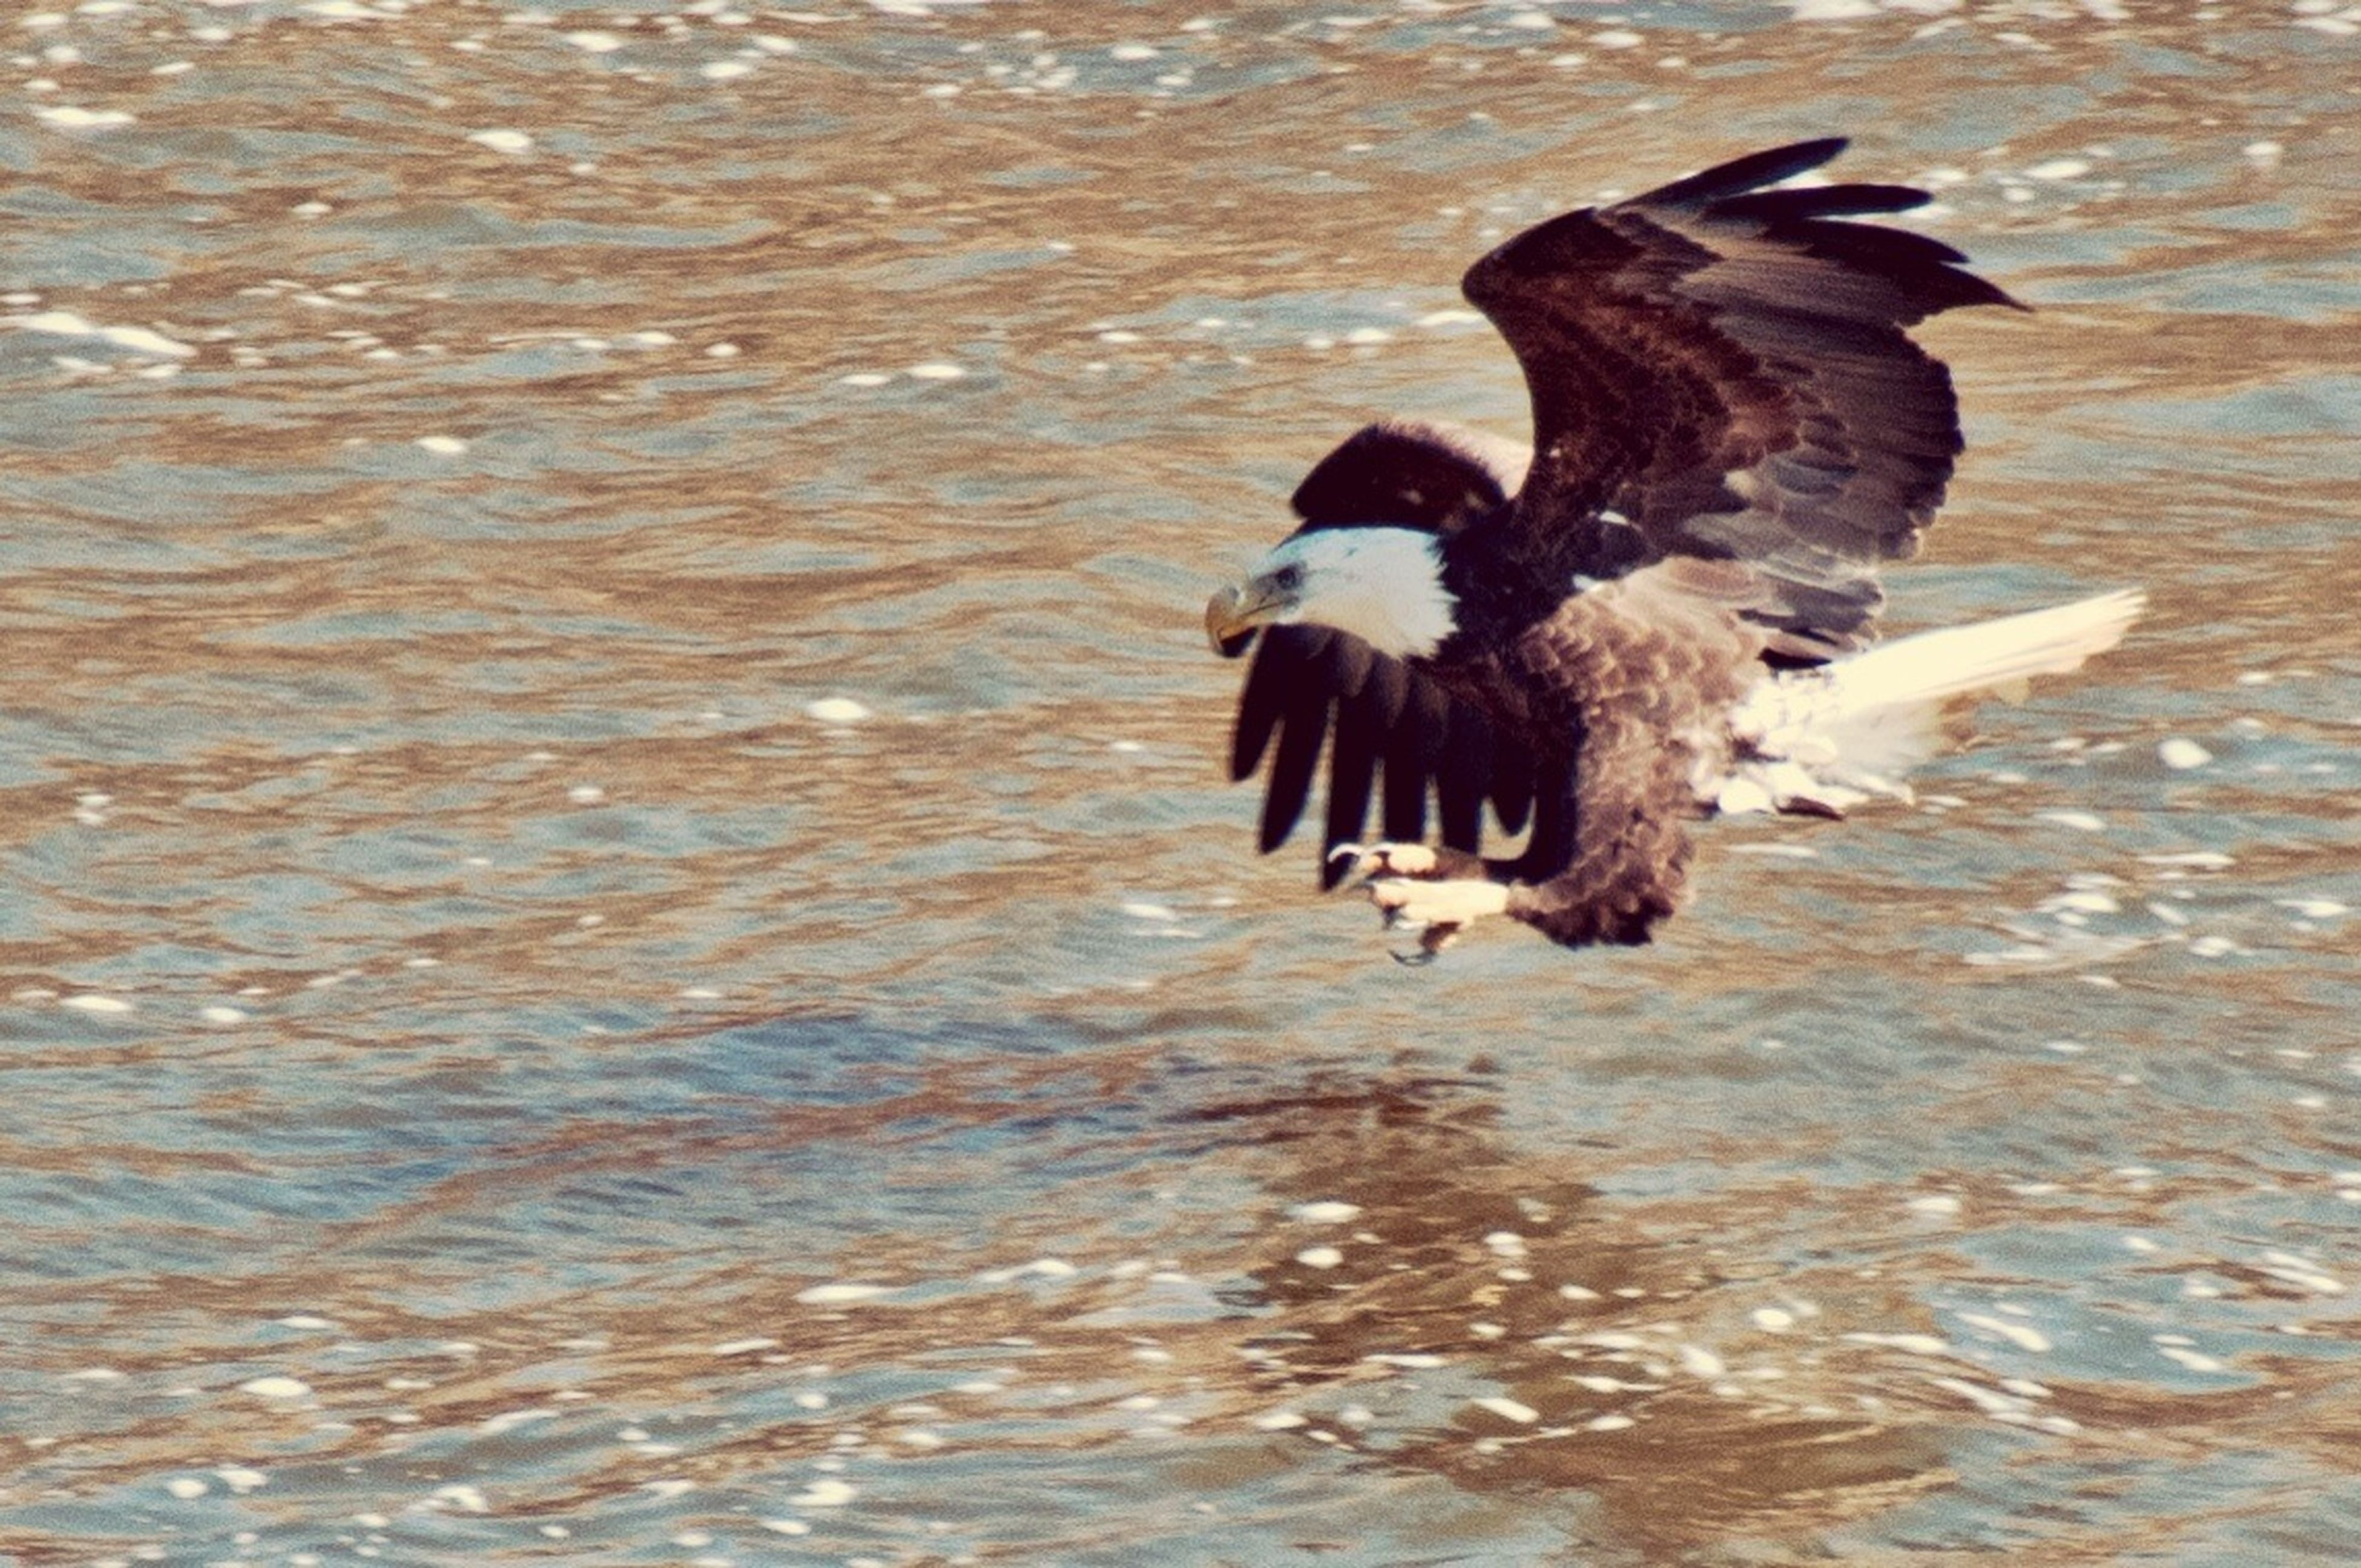 water, animal themes, animals in the wild, wildlife, bird, one animal, waterfront, lake, nature, rippled, high angle view, reflection, day, outdoors, rock - object, no people, duck, swimming, beauty in nature, tranquility